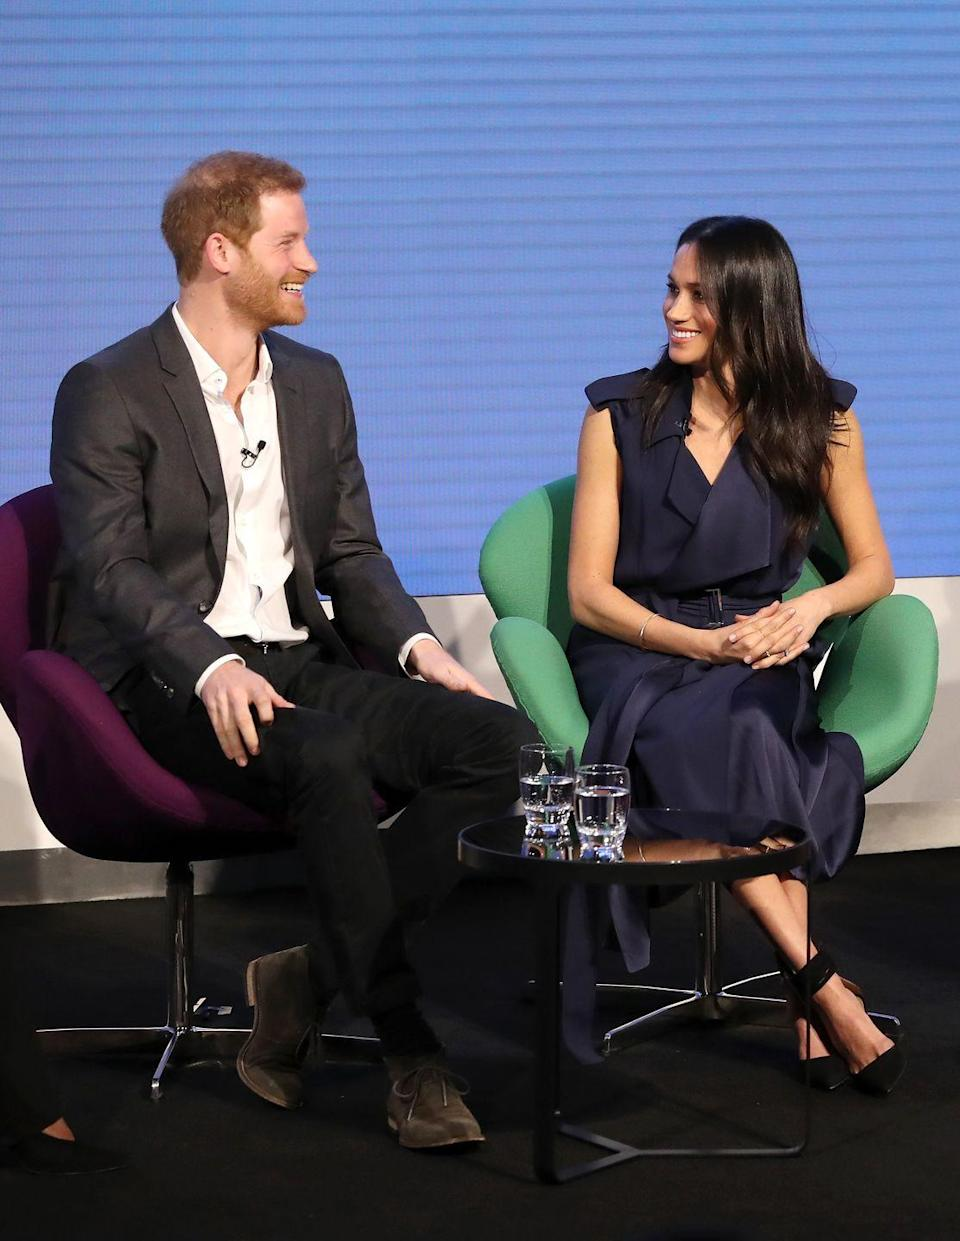 """<p>For the first ever Royal Foundation Forum, Markle wore a striking <a href=""""https://go.redirectingat.com?id=74968X1596630&url=https%3A%2F%2Fwww.net-a-porter.com%2Fgb%2Fen%2Fproduct%2F992242&sref=https%3A%2F%2Fwww.townandcountrymag.com%2Fstyle%2Ffashion-trends%2Fg3272%2Fmeghan-markle-preppy-style%2F"""" rel=""""nofollow noopener"""" target=""""_blank"""" data-ylk=""""slk:blue wrap dress by Jason Wu"""" class=""""link rapid-noclick-resp"""">blue wrap dress by Jason Wu</a>, paired with black pumps with an ankle detail.</p><p><a class=""""link rapid-noclick-resp"""" href=""""https://go.redirectingat.com?id=74968X1596630&url=https%3A%2F%2Fshop.nordstrom.com%2Fs%2Fjason-wu-crepe-back-satin-belted-wrap-dress%2F4761825&sref=https%3A%2F%2Fwww.townandcountrymag.com%2Fstyle%2Ffashion-trends%2Fg3272%2Fmeghan-markle-preppy-style%2F"""" rel=""""nofollow noopener"""" target=""""_blank"""" data-ylk=""""slk:SHOP NOW"""">SHOP NOW</a> <em>Jason Wu C</em><em>repe Back Satin Belted Wrap Dress, $1,795 </em></p><p><a class=""""link rapid-noclick-resp"""" href=""""https://go.redirectingat.com?id=74968X1596630&url=https%3A%2F%2Fwww.matchesfashion.com%2Fus%2Fproducts%2FAquazzura-Casablanca-multi-strap-suede-pumps-1183202&sref=https%3A%2F%2Fwww.townandcountrymag.com%2Fstyle%2Ffashion-trends%2Fg3272%2Fmeghan-markle-preppy-style%2F"""" rel=""""nofollow noopener"""" target=""""_blank"""" data-ylk=""""slk:SHOP NOW"""">SHOP NOW</a> <em>Aquazzura Casablanca 85 Multi-Strap Suede Pumps, $750</em></p>"""